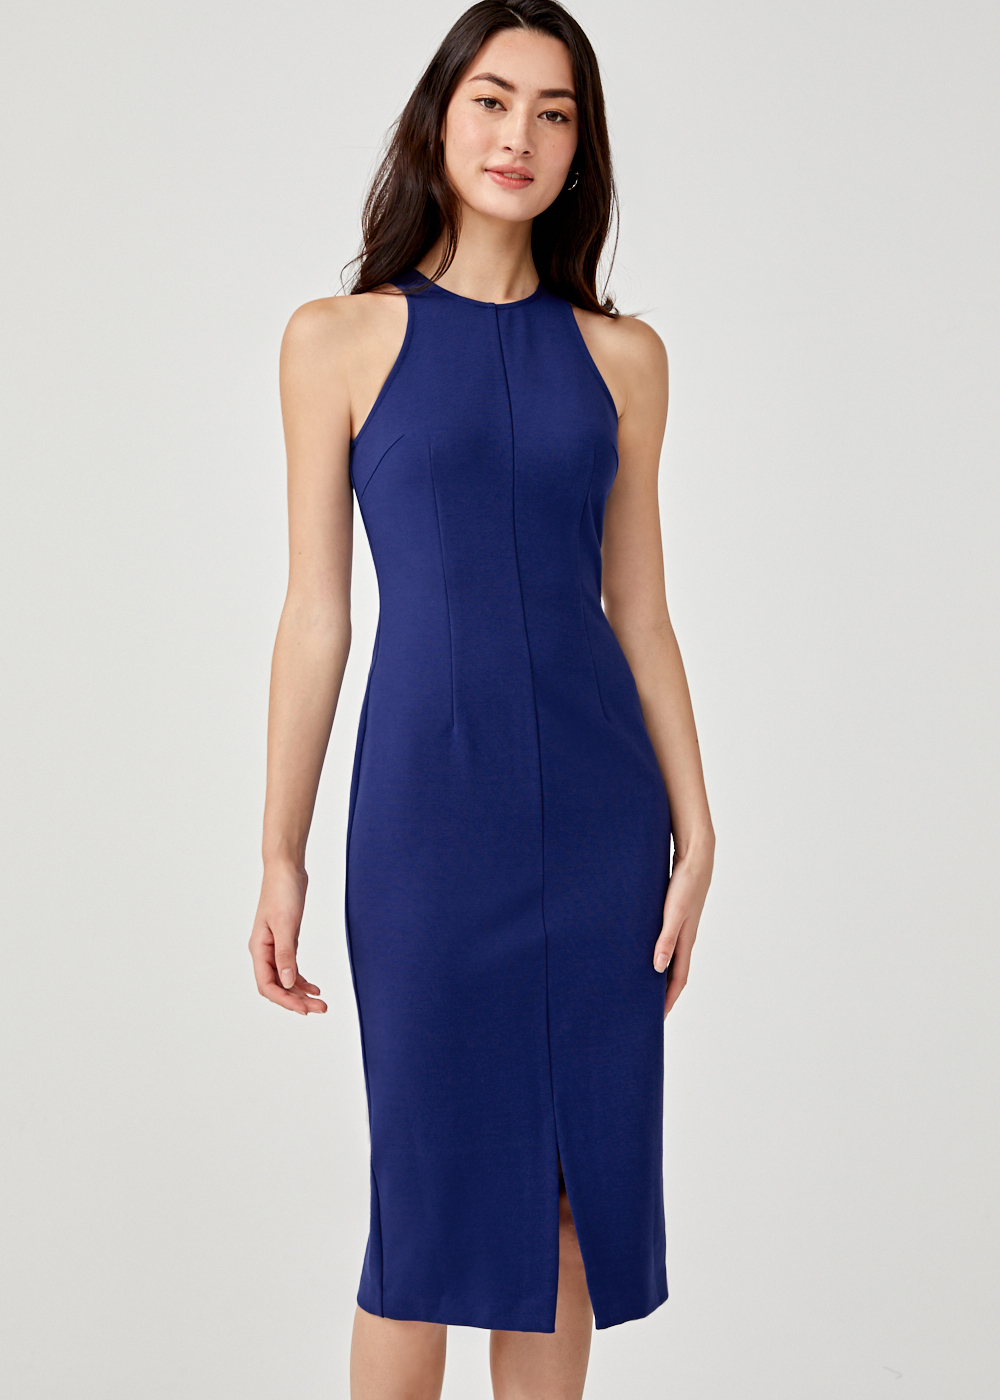 Reyna Bodycon Midi Dress